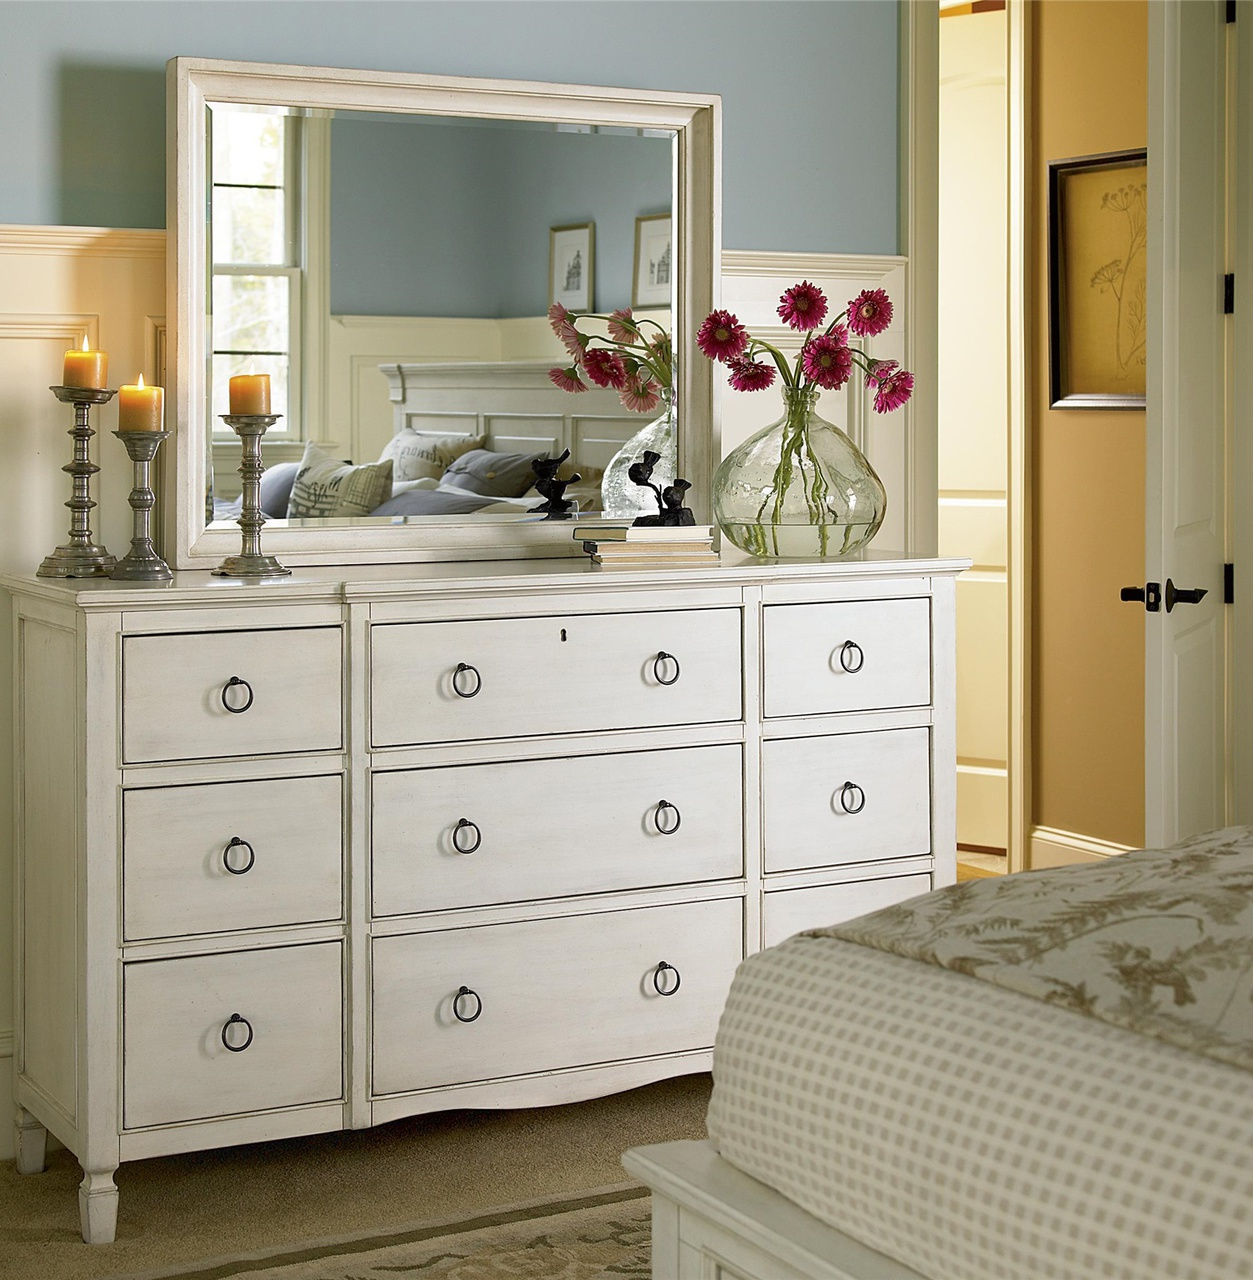 Country Chic Maple Wood 9 Drawer White Dresser With Mirror Zin Home,United Airlines Baggage Policy Economy